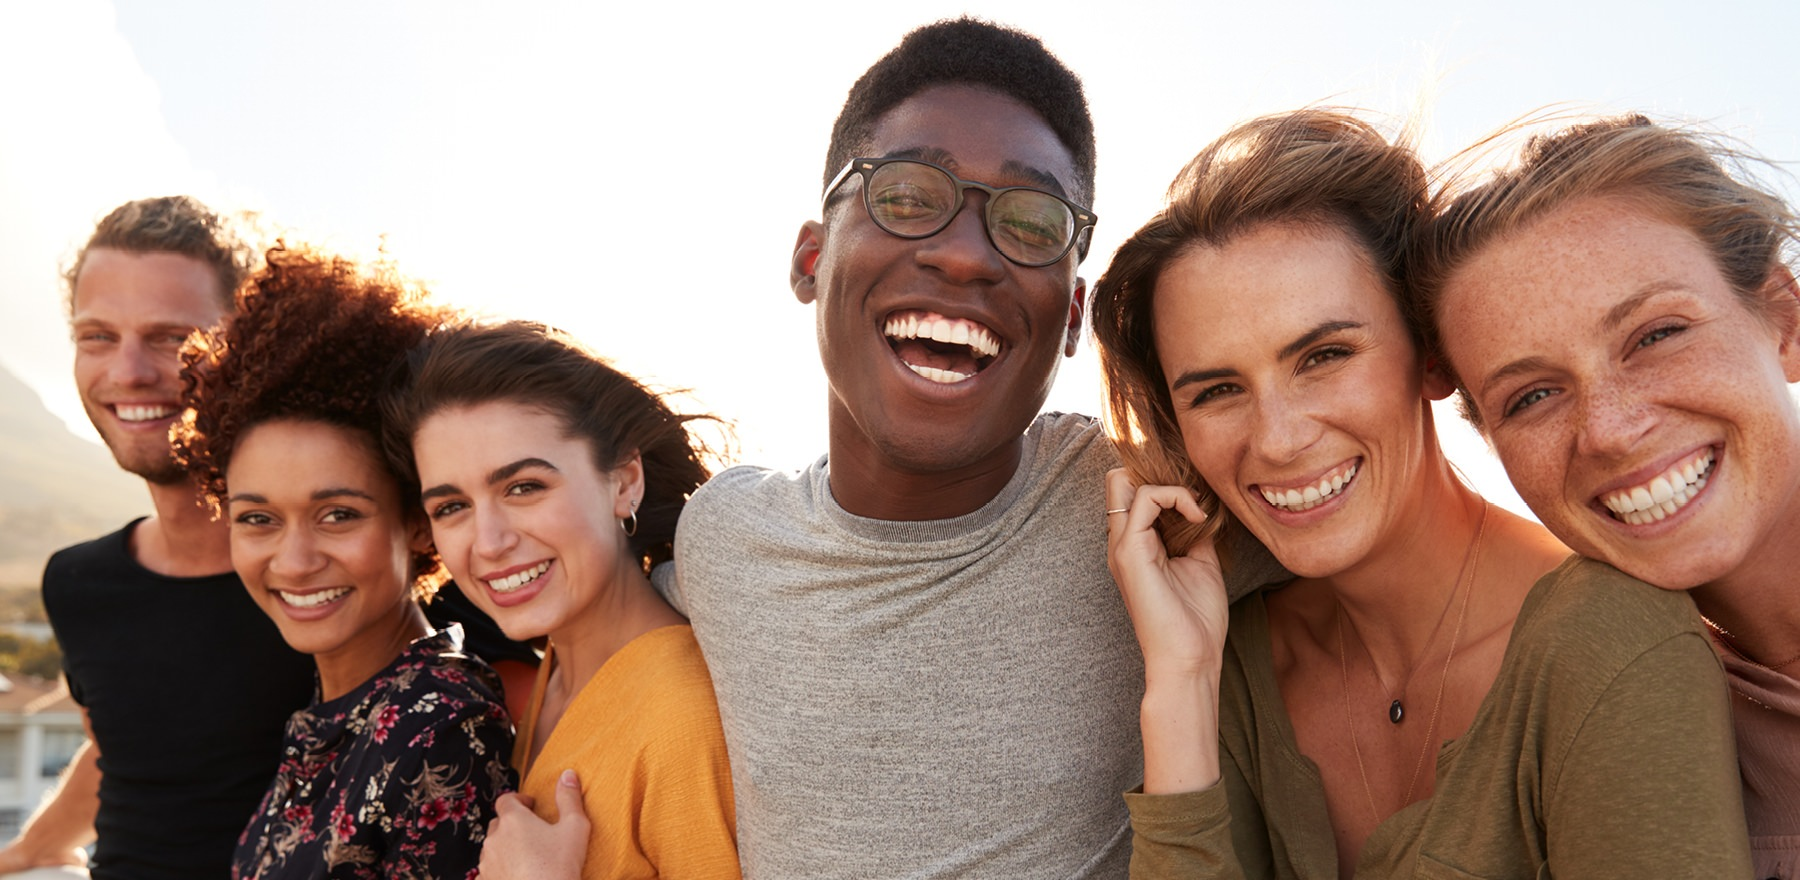 young adults smiling together outdoors while looking at the camera